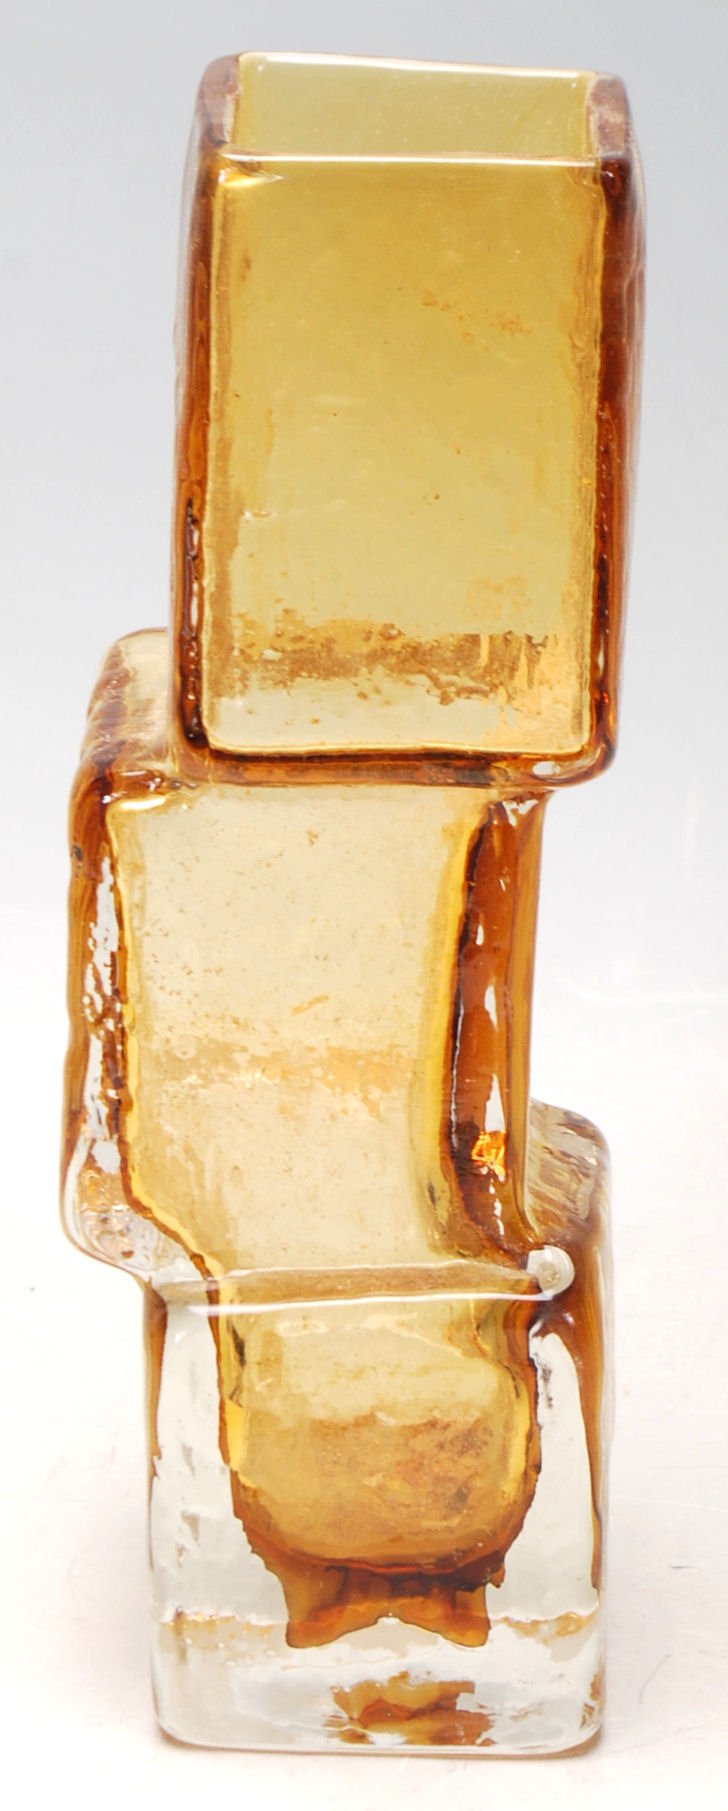 Lot 32 - Whitefriars (Manner Of) - A vintage amber glass ' Drunken Bricklayer ' type vase in the manner of